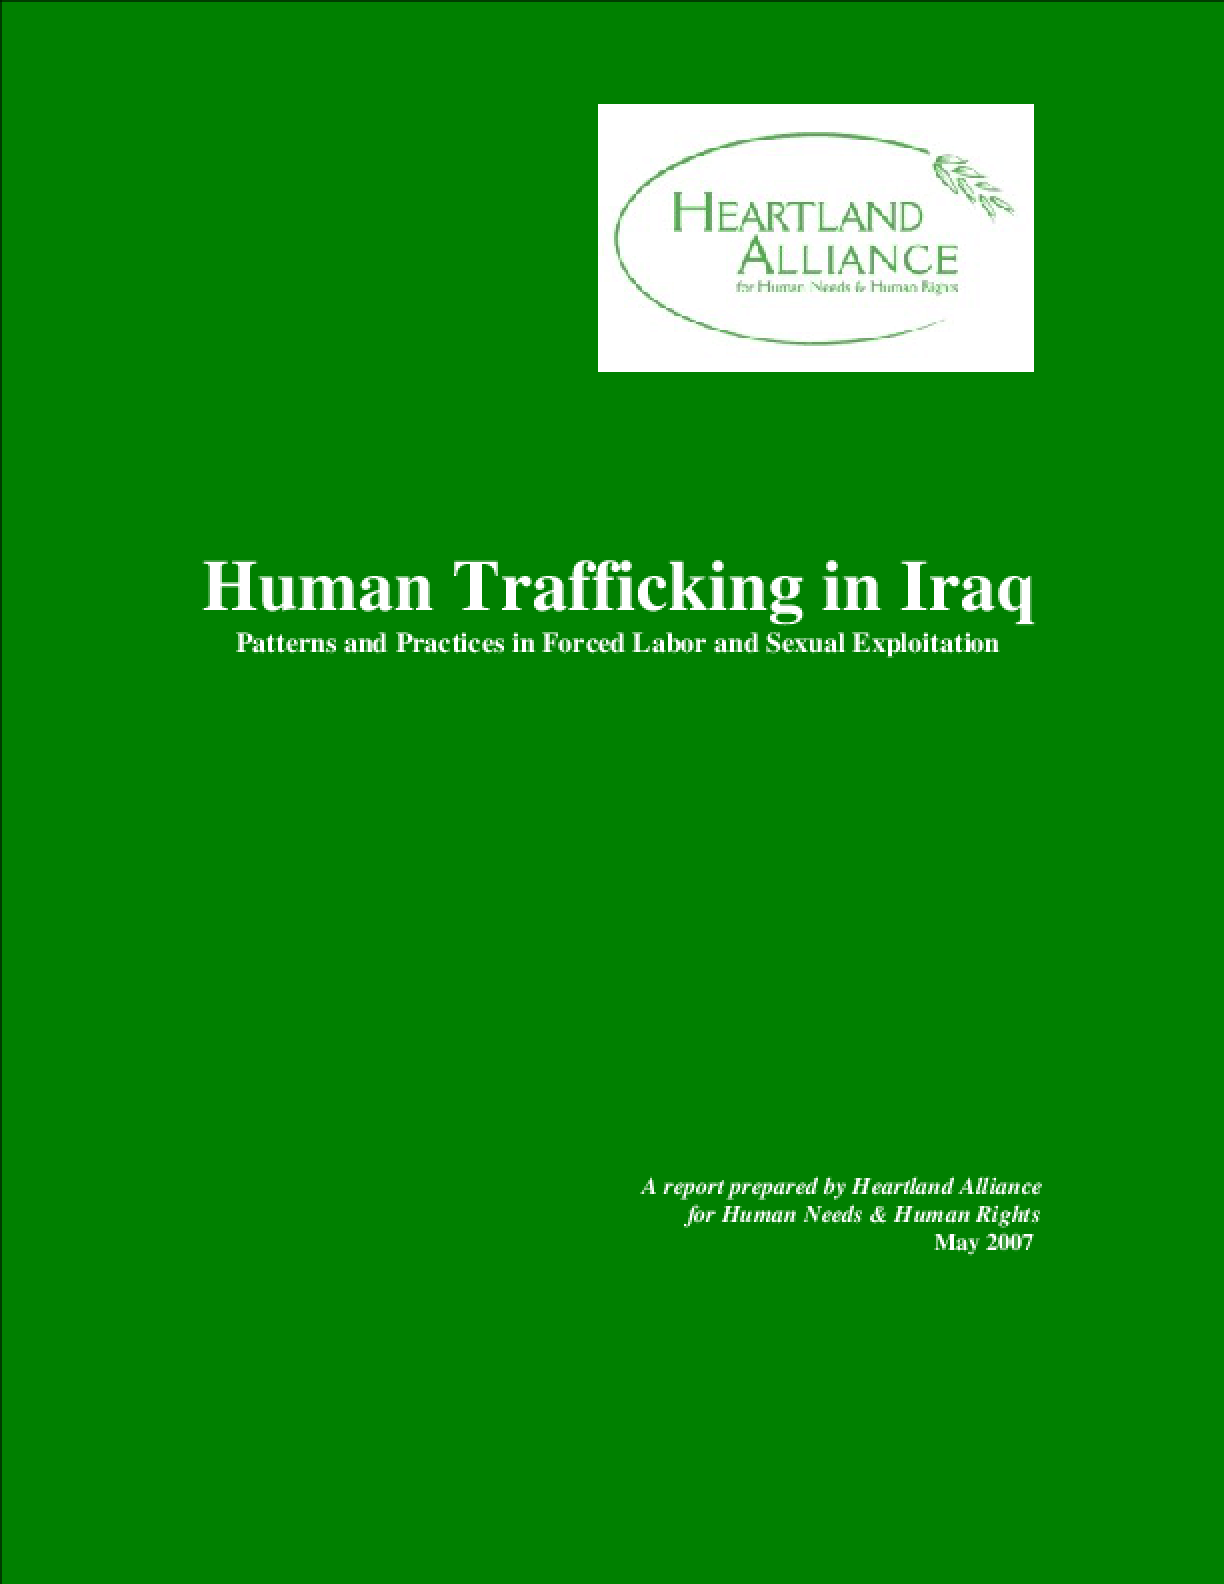 Human Trafficking in Iraq: Patterns and Practices in Forced Labor and Sexual Exploitation